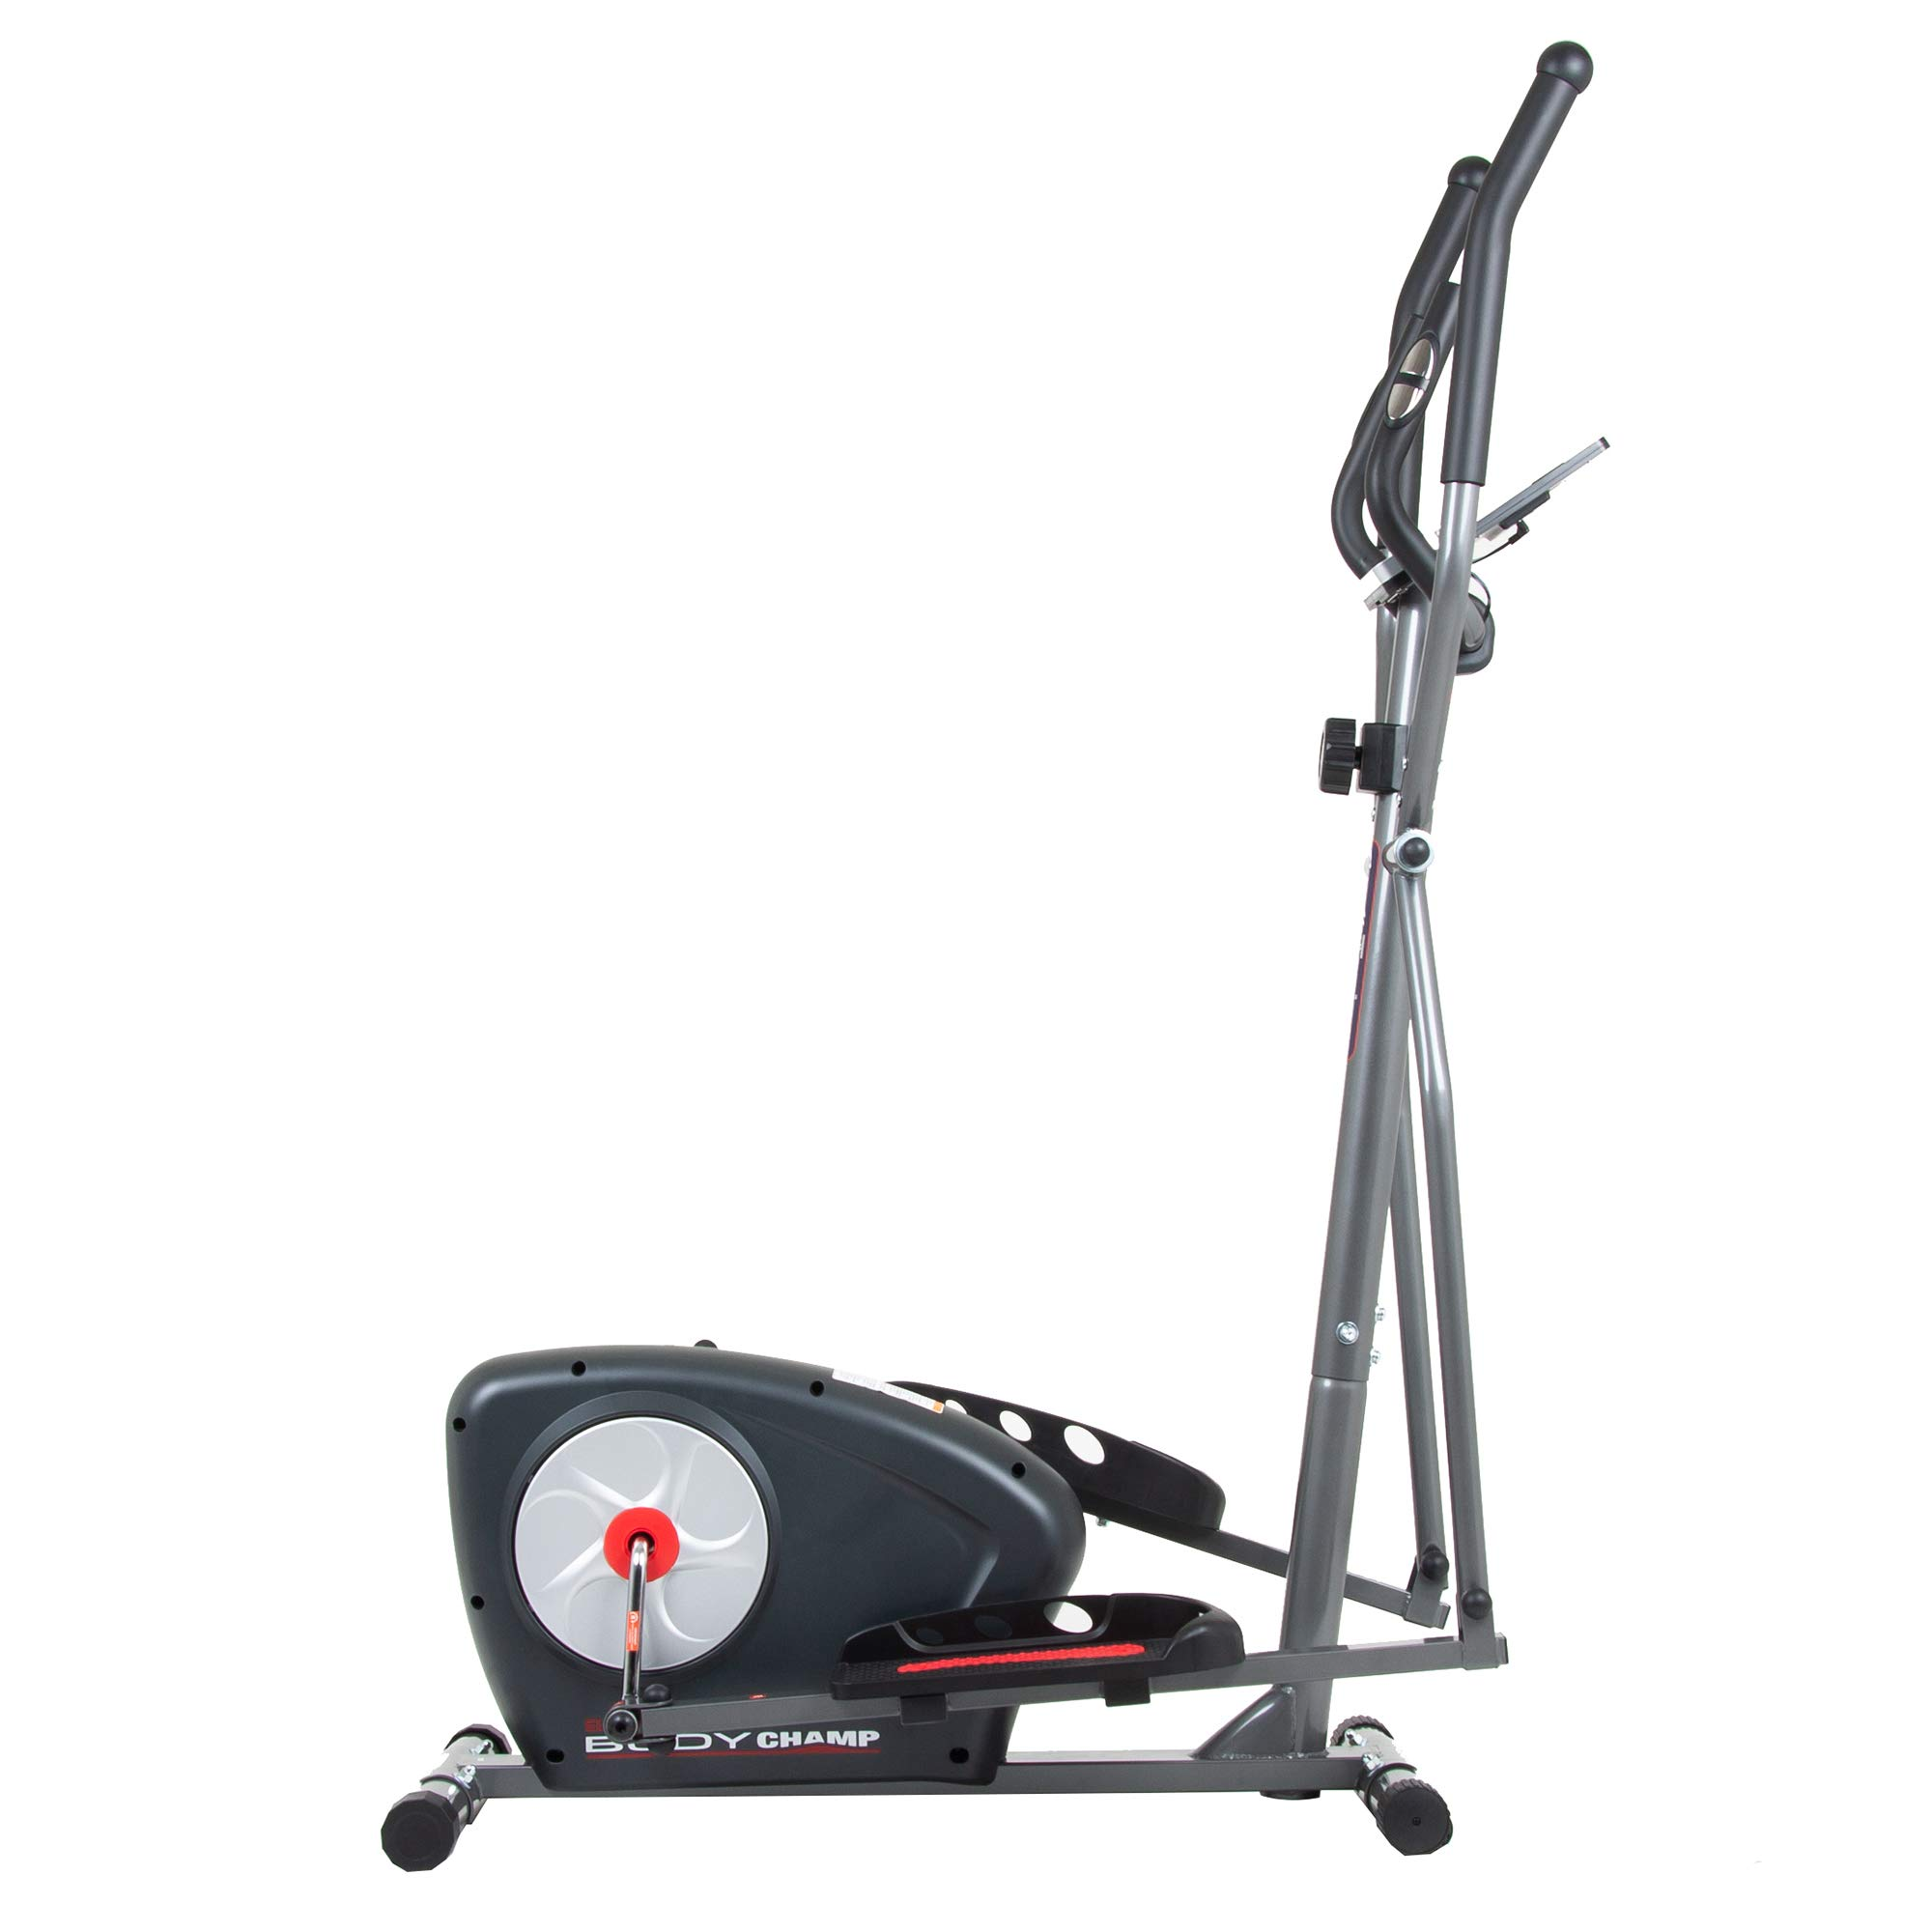 Body Champ New Elliptical Machine Trainer Magnetic Smooth Quiet Driven with LCD Media Holder Monitor and Pulse Rate Grips BR2117 by Body Champ (Image #1)